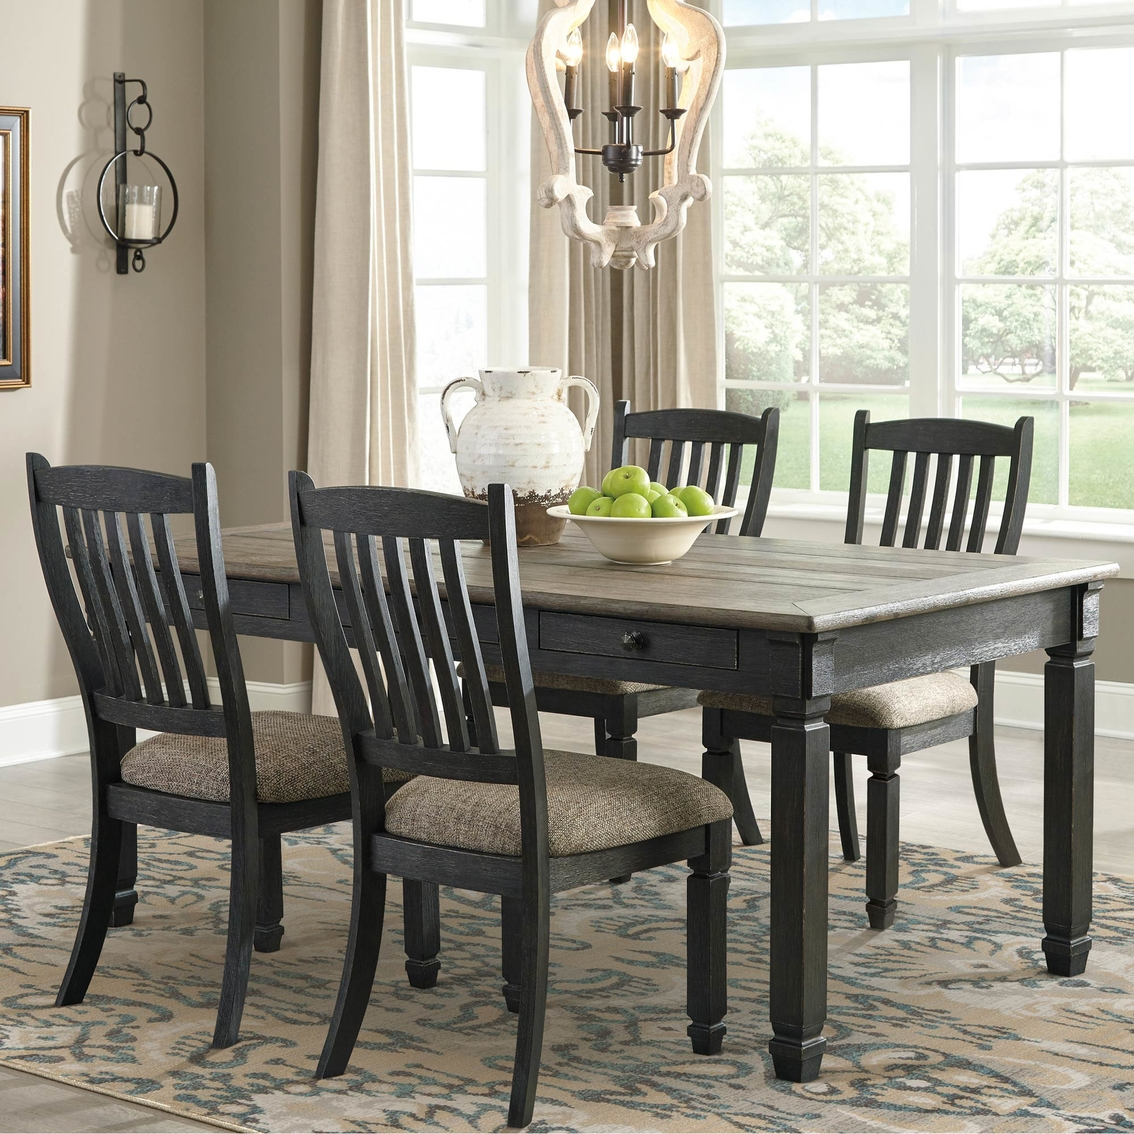 Signature Design By Ashley Tyler Creek 5 Pc. Dining Room ...